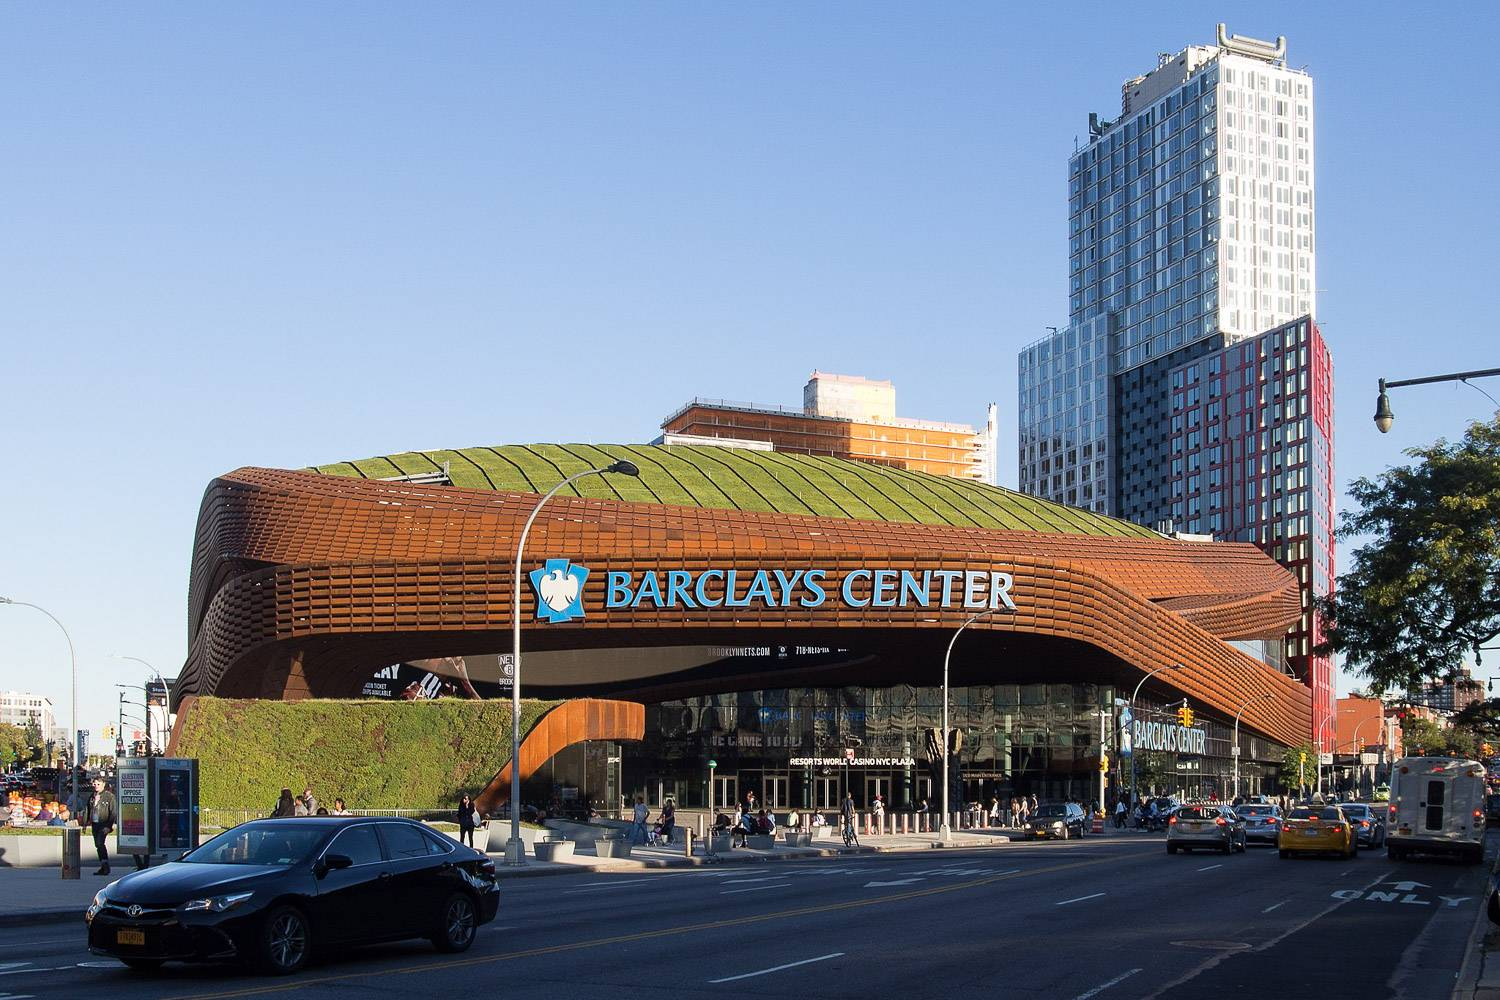 Foto del Barclays Center di Brooklyn con un tetto verde coperto di piante basse